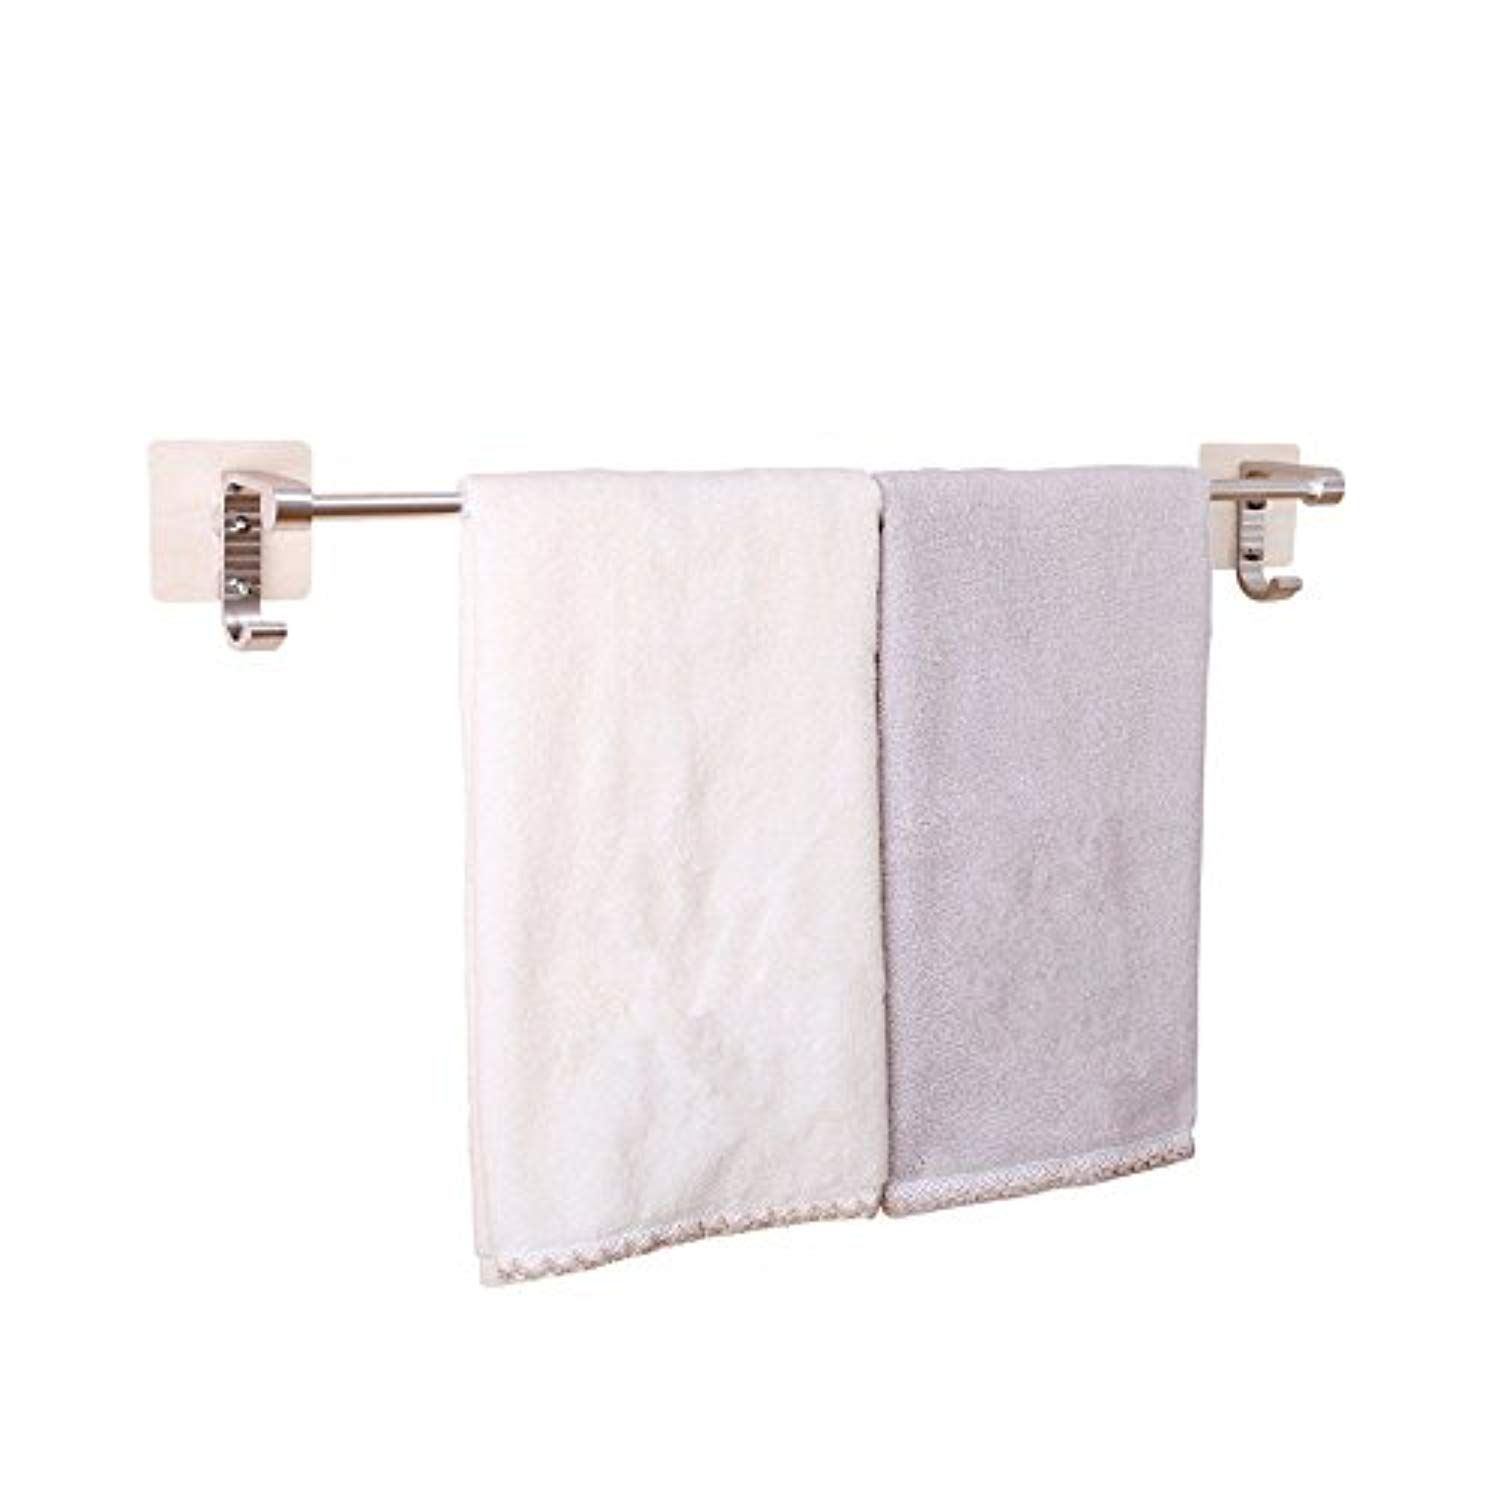 Flyrcx Bathroom Suction Cup Type Aluminium Towel Bar Toilet Individual Rack Details Can Be Found By Clicking On The Image